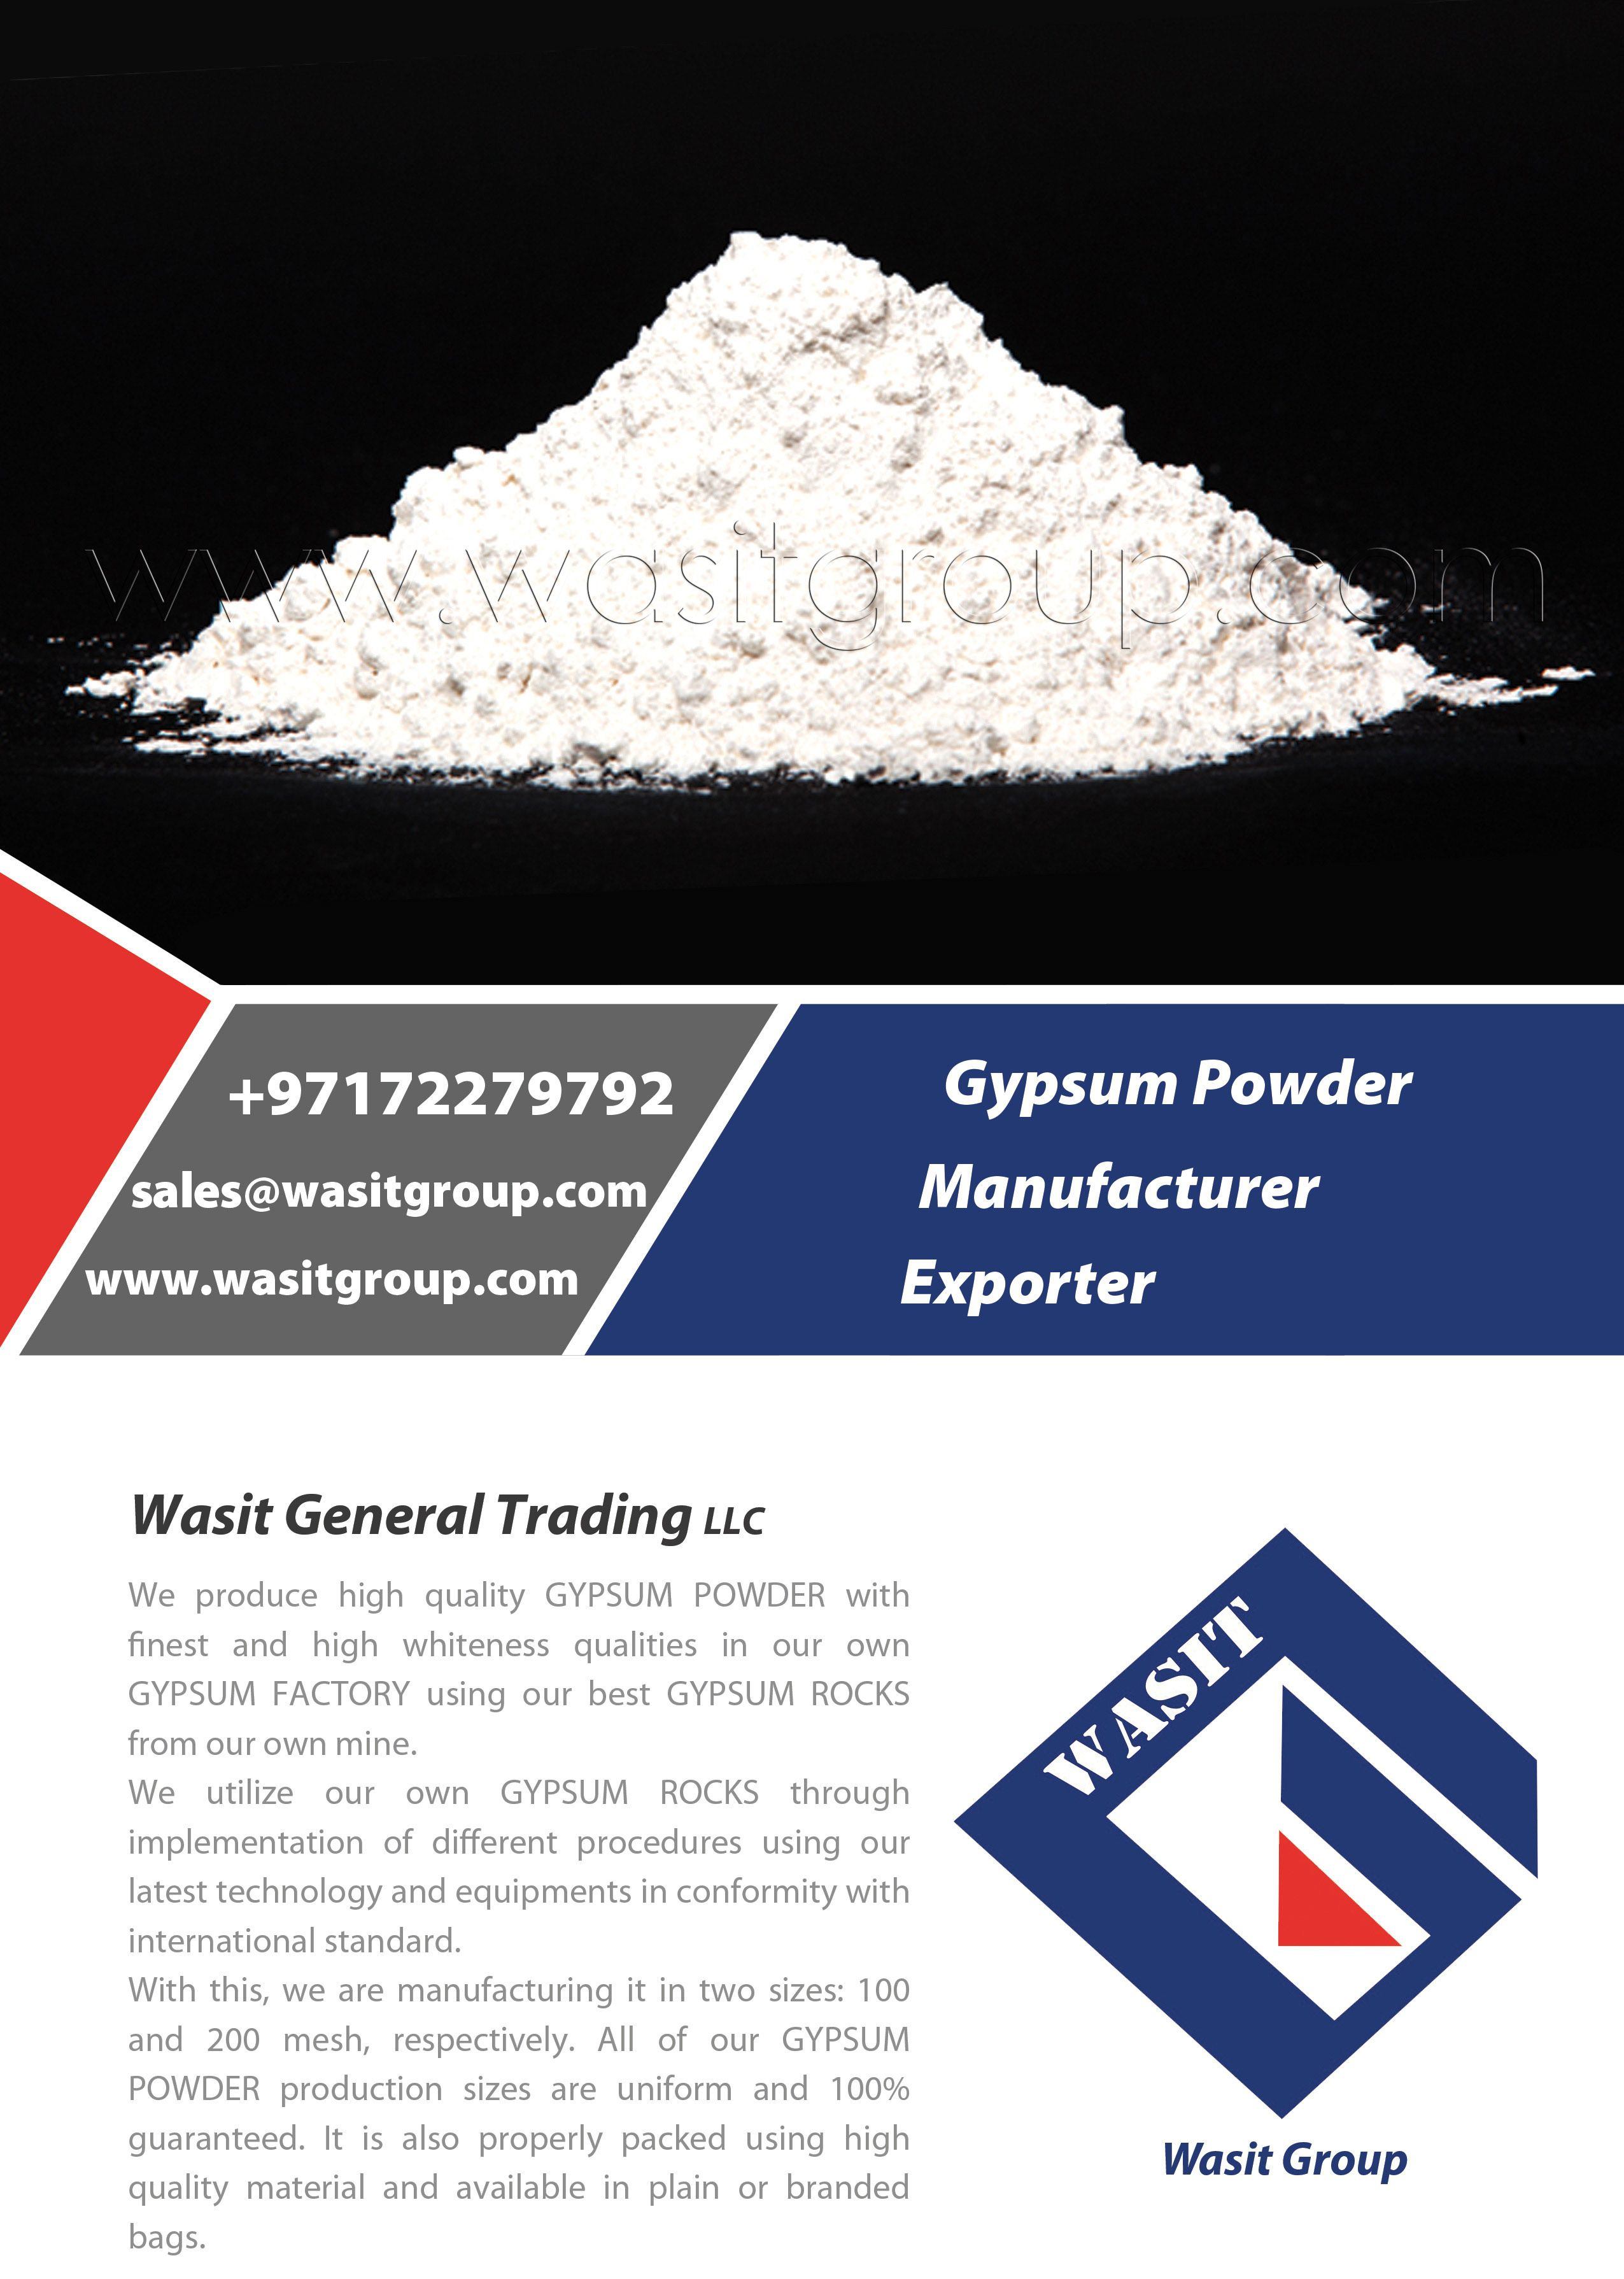 We Produce High Quality Gypsum Powder With Finest And High Whiteness Qualities In Our Own Gypsum Factory Using Our Best Gypsum Gypsum Powder Gypsum Gypsum Rock